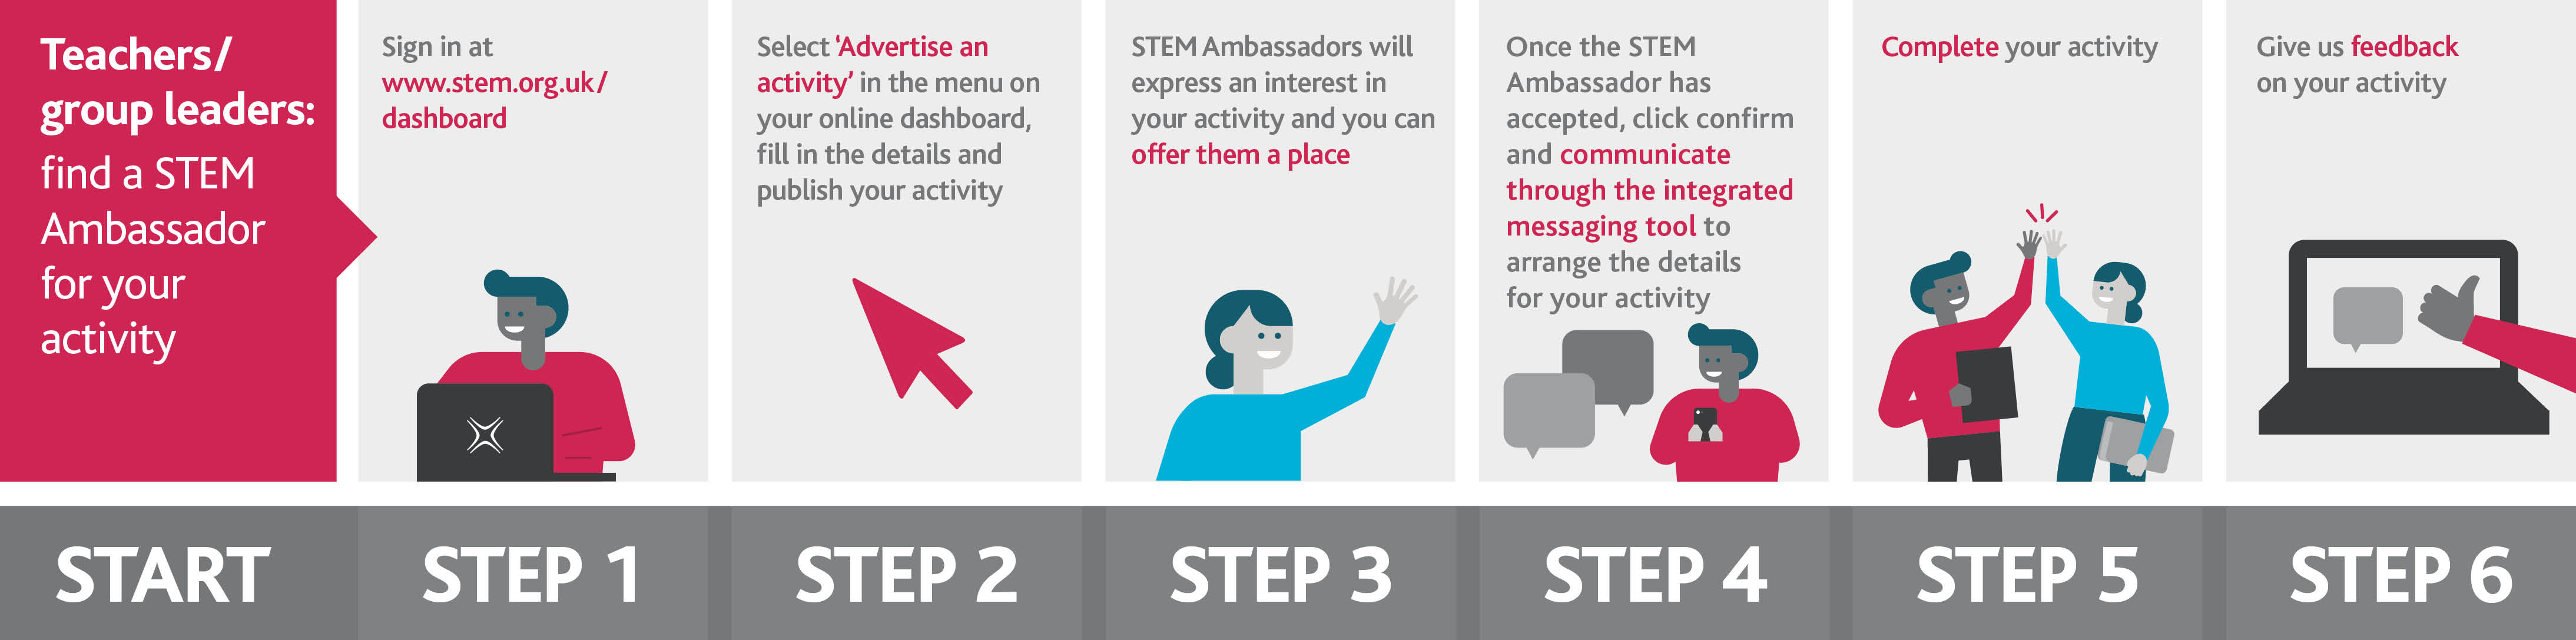 Step by step process to finding a STEM Ambassador for your activity